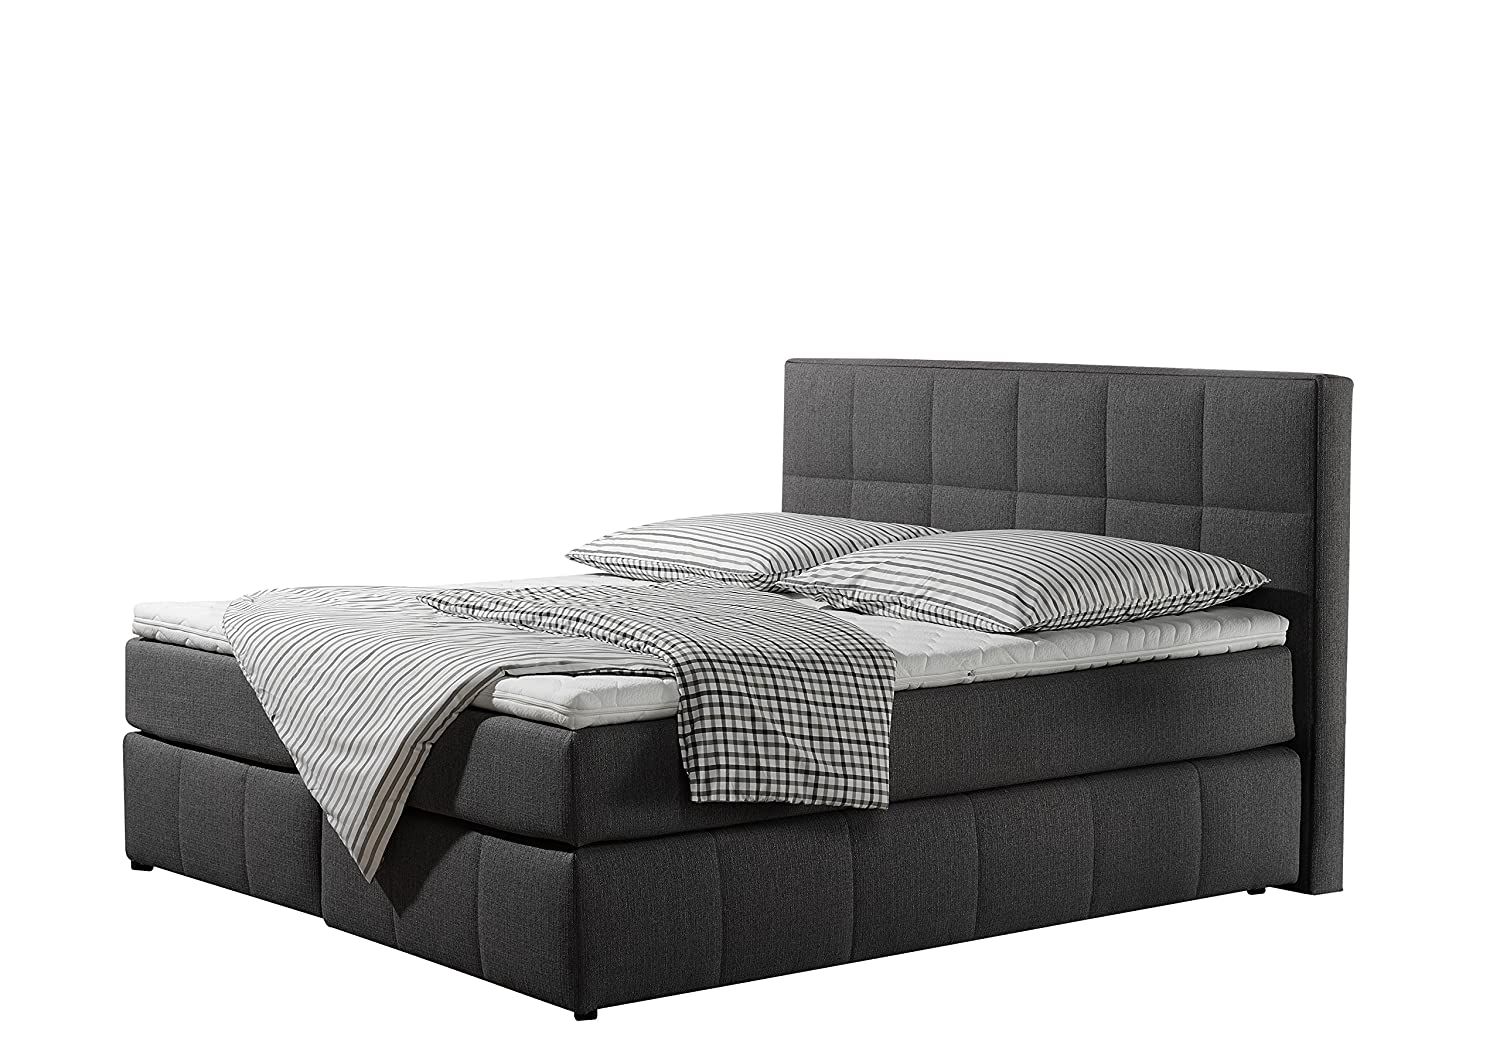 Maintal Betten 237353-3159 Box springbett Casano 180 x 200 cm, Strukturstoff anthrazit